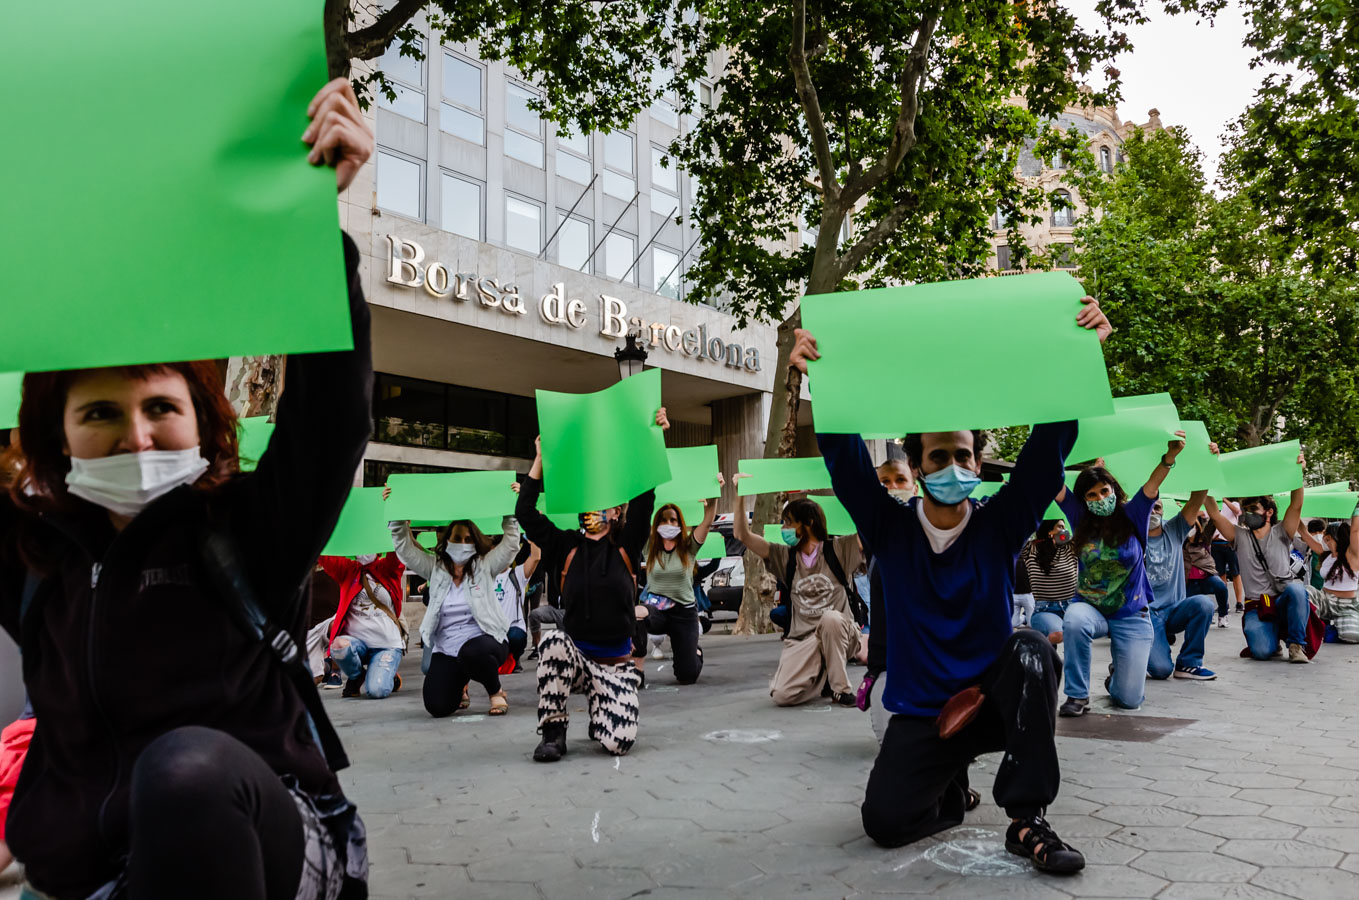 Rebels holding green posters in front of La Borsa de Barcelona